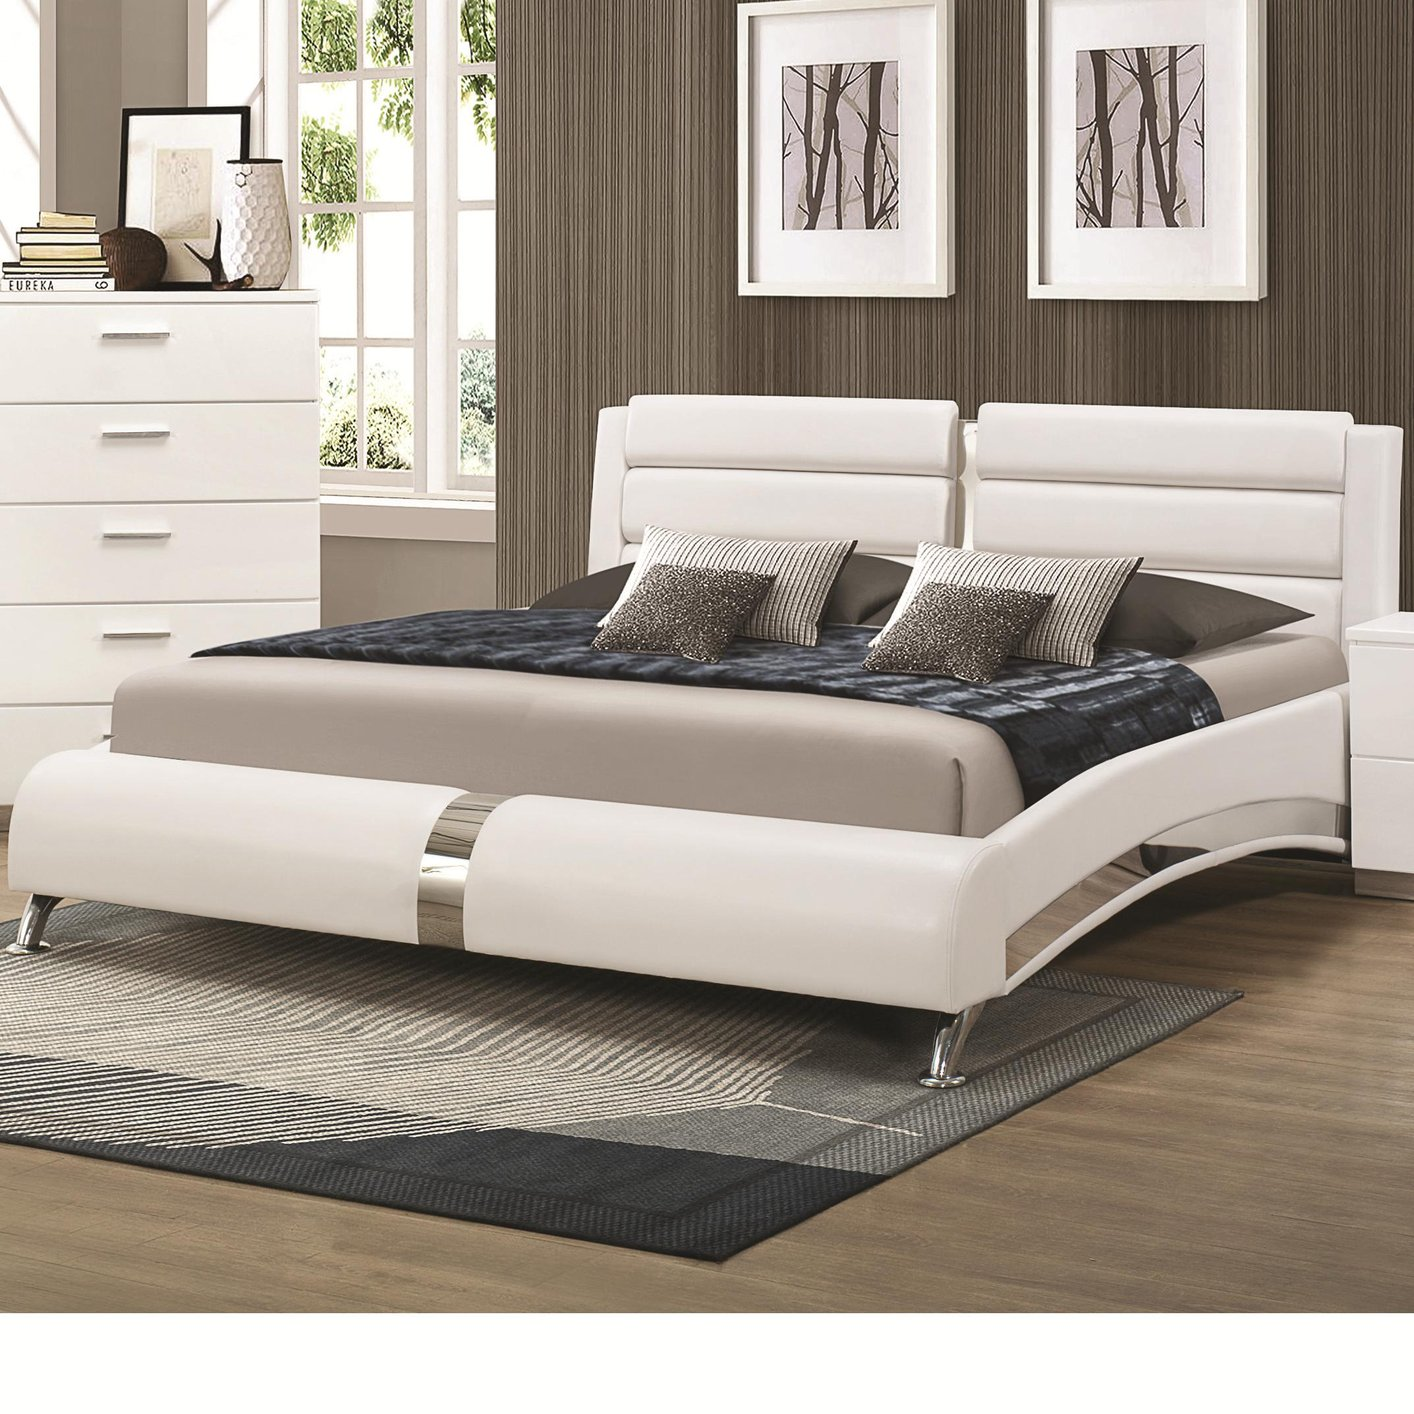 Coaster 300345kw silver california king size wood bed California king beds